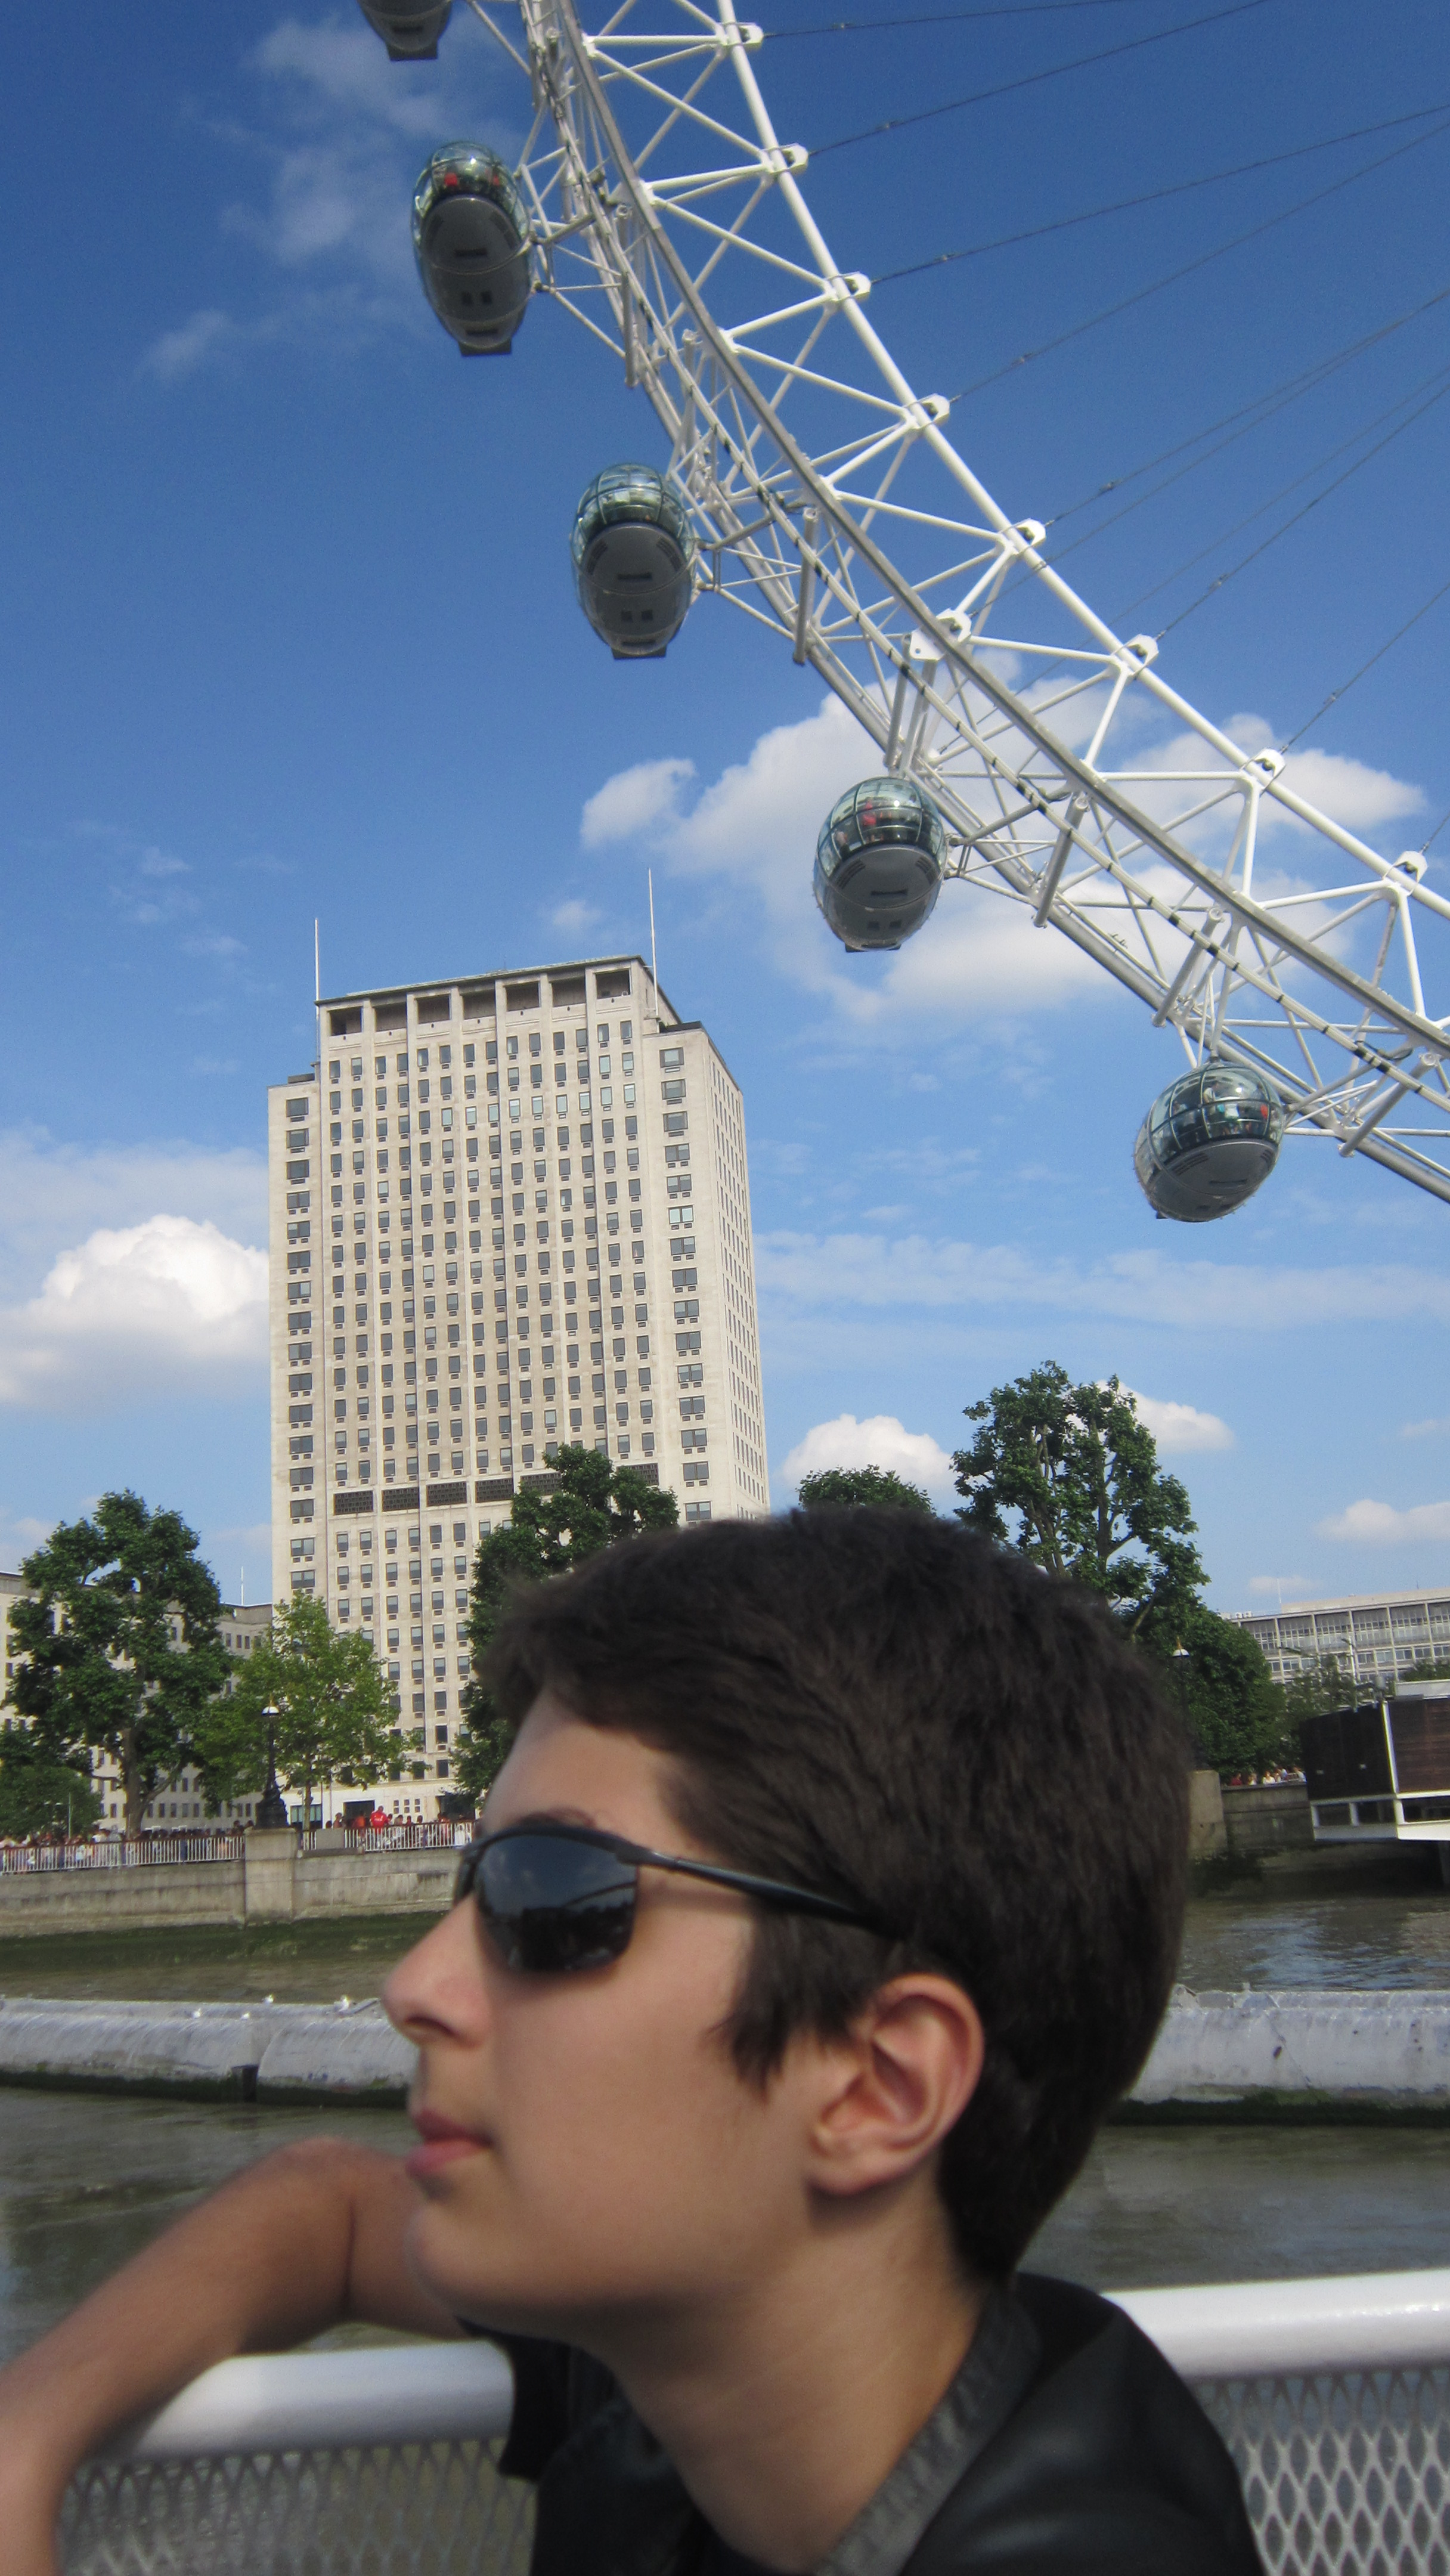 the Thames river cruise